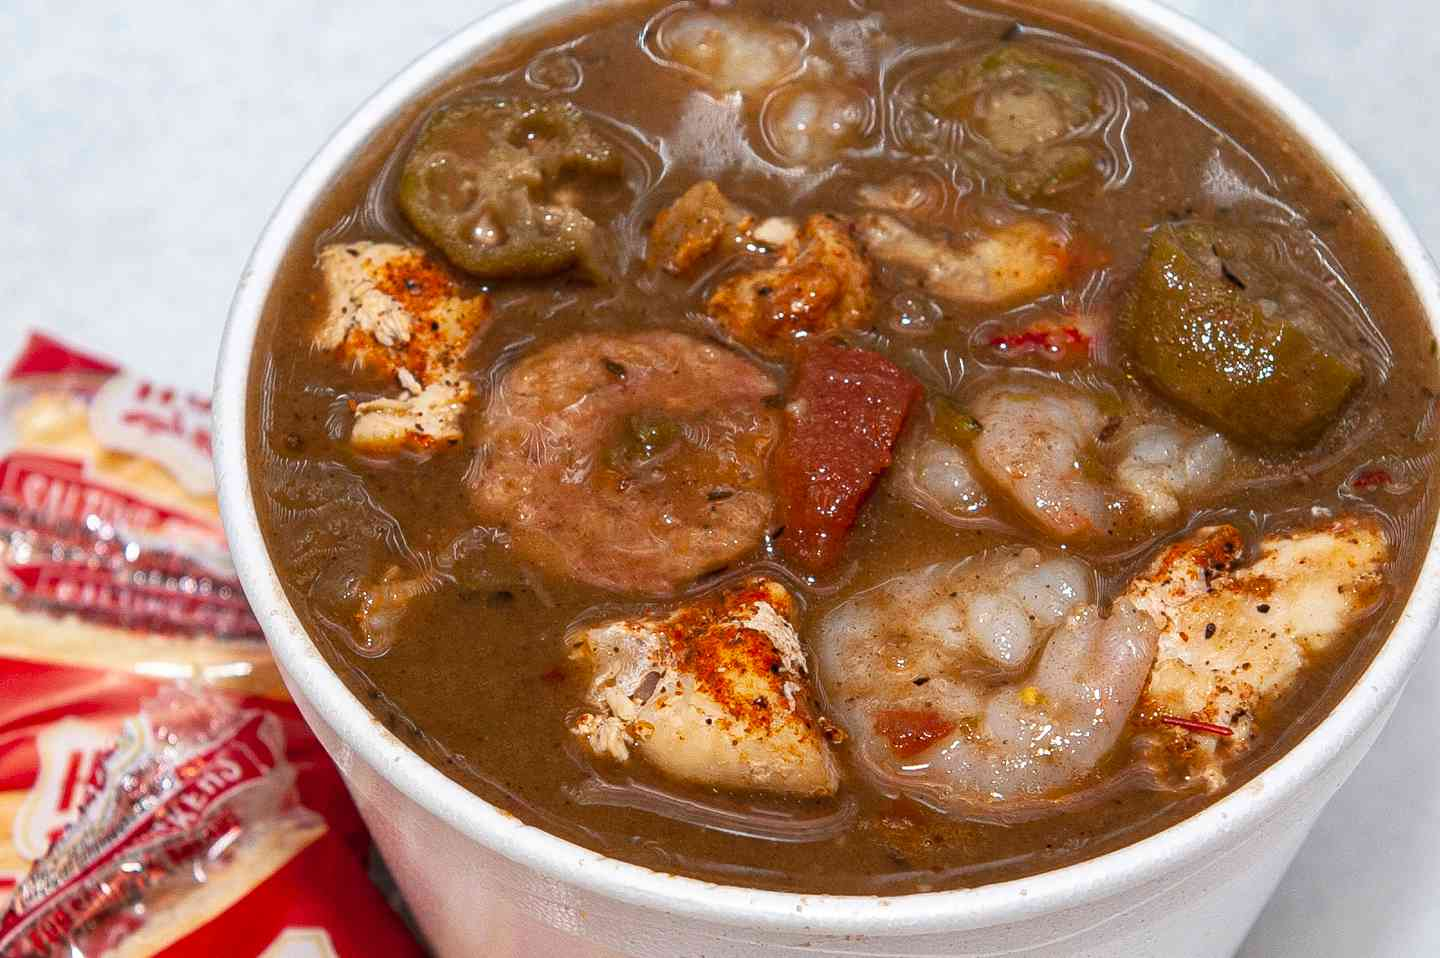 Gumbo (4 Proteins)